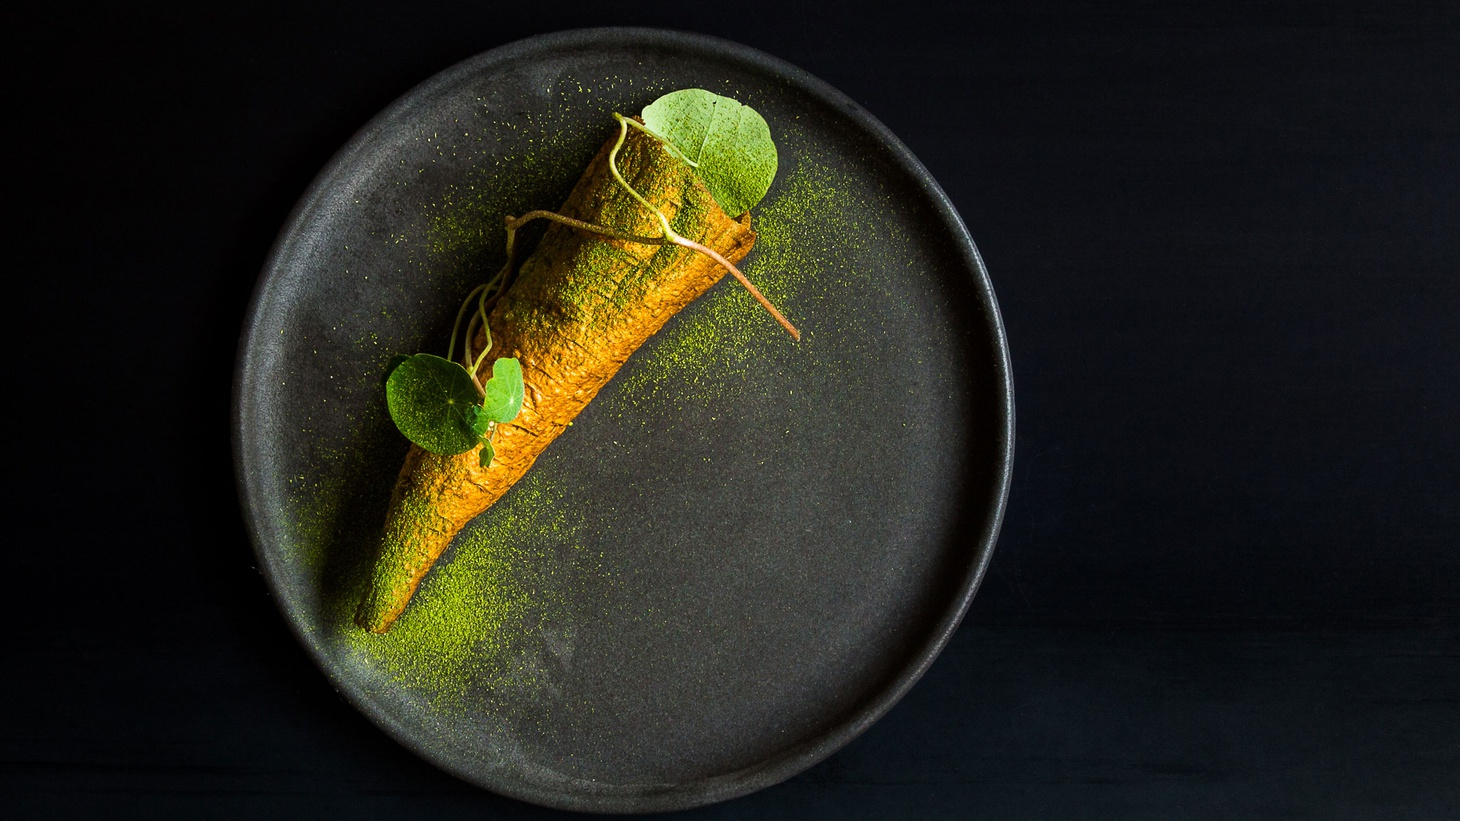 This week, food critic Jonathan Gold seeks out Chef Jordan Kahn's highly stylized creations at Destroyer in Culver City, where things aren't always what they seem.